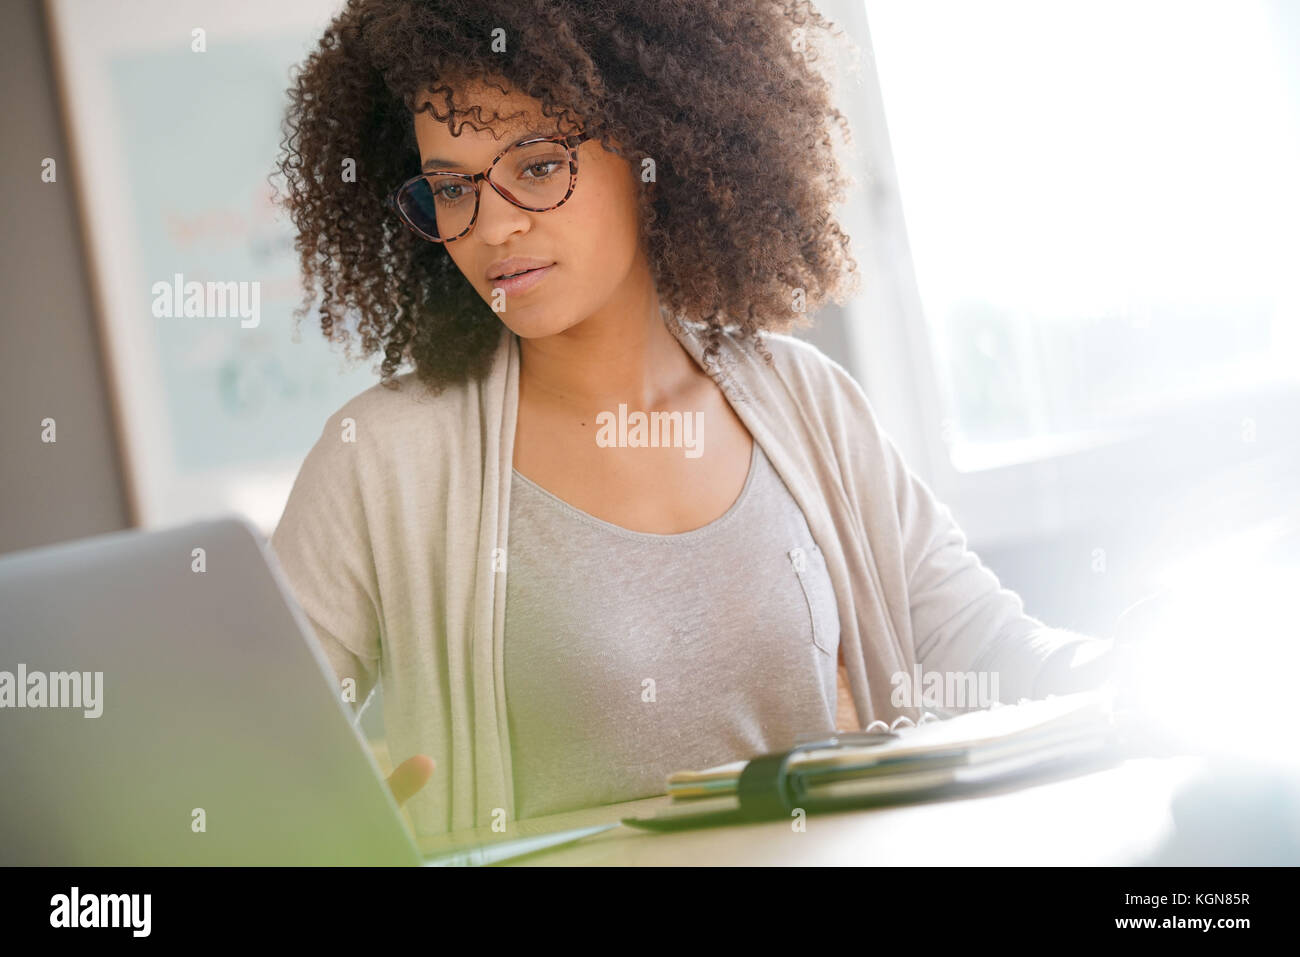 Mixed Race woman working from home on laptop computer Photo Stock